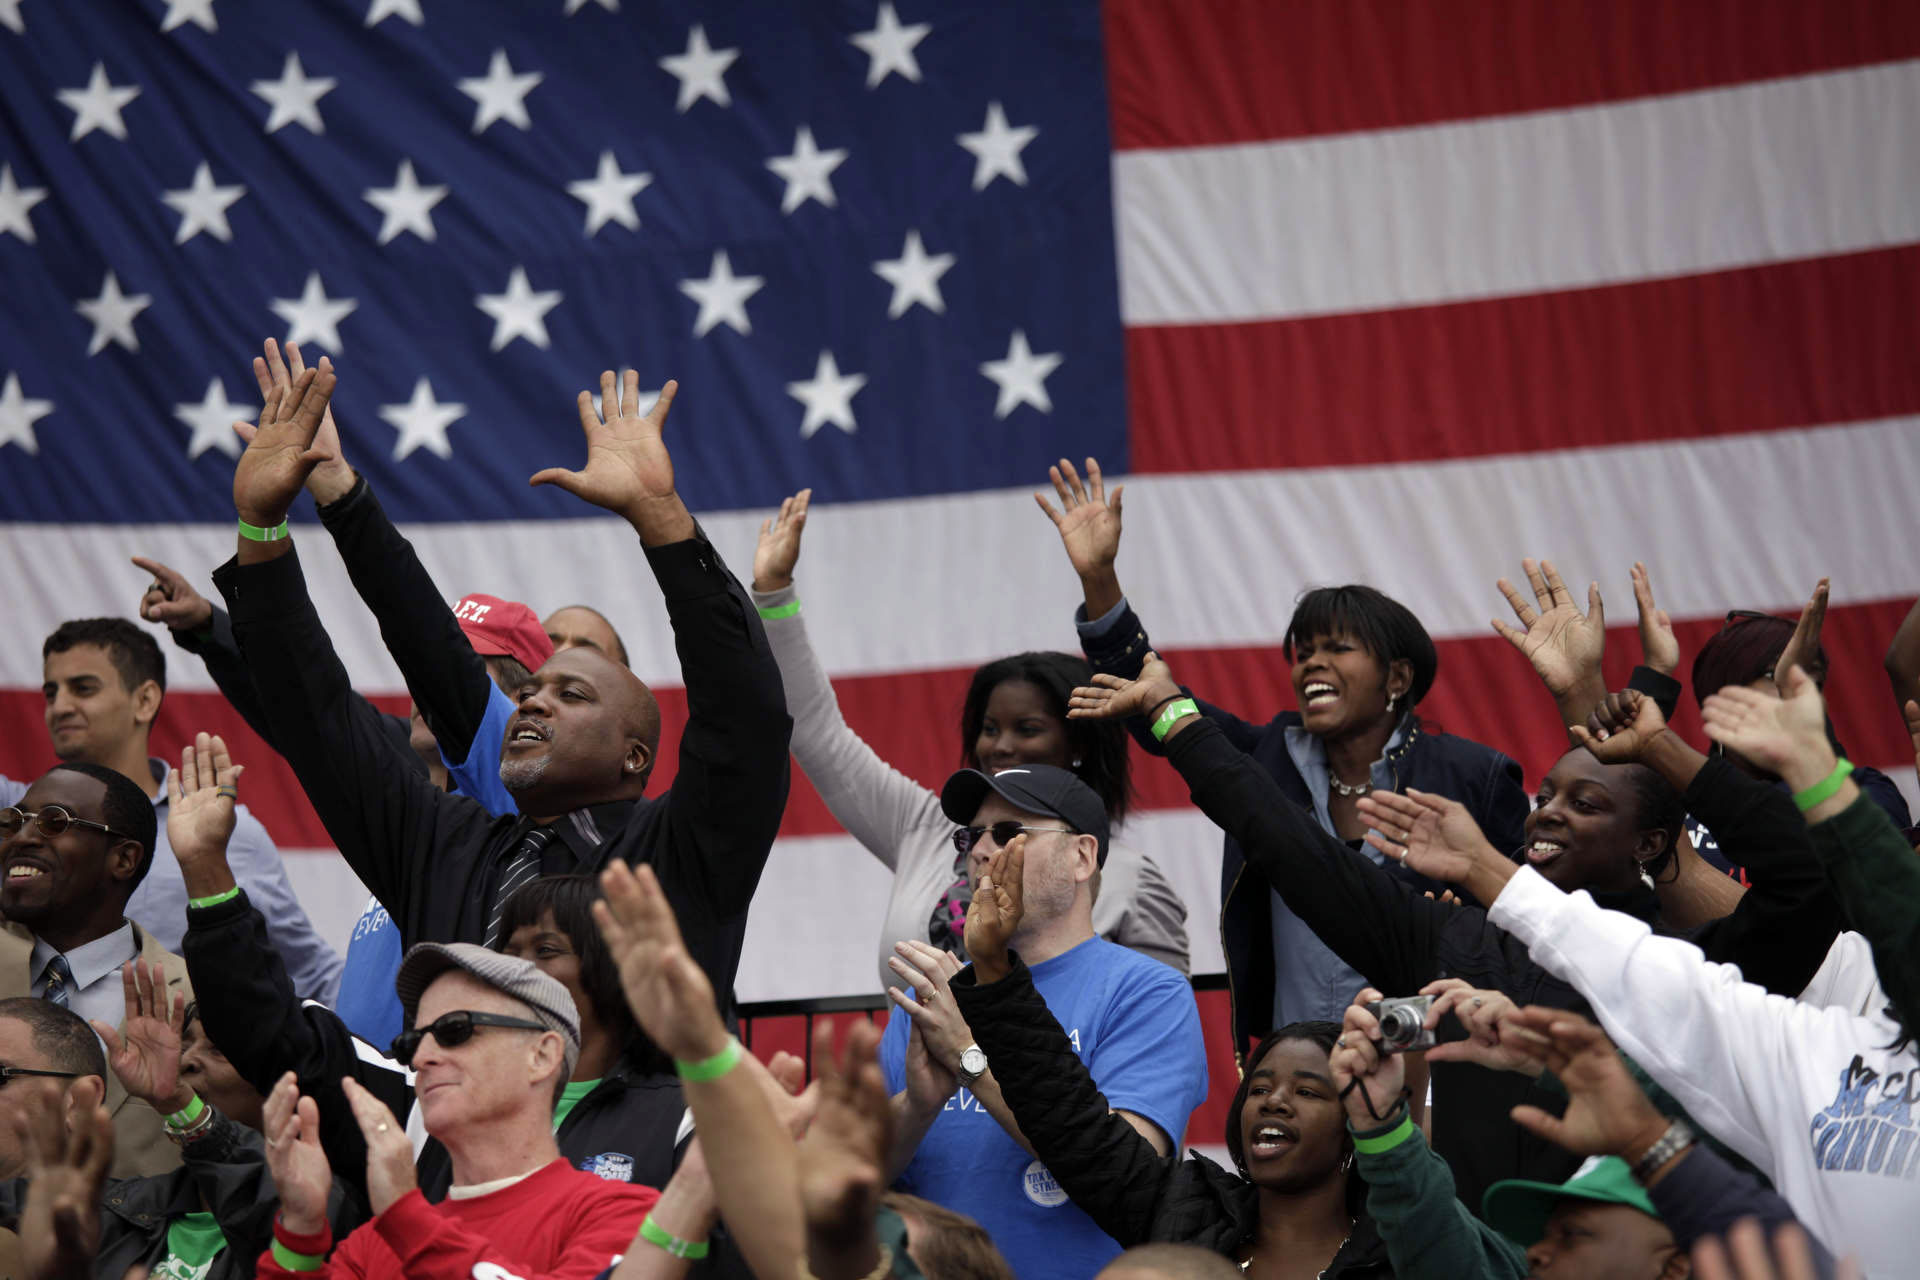 eople wave as President Barack Obama addresses the Labor Day celebration in Detroit, Mich.